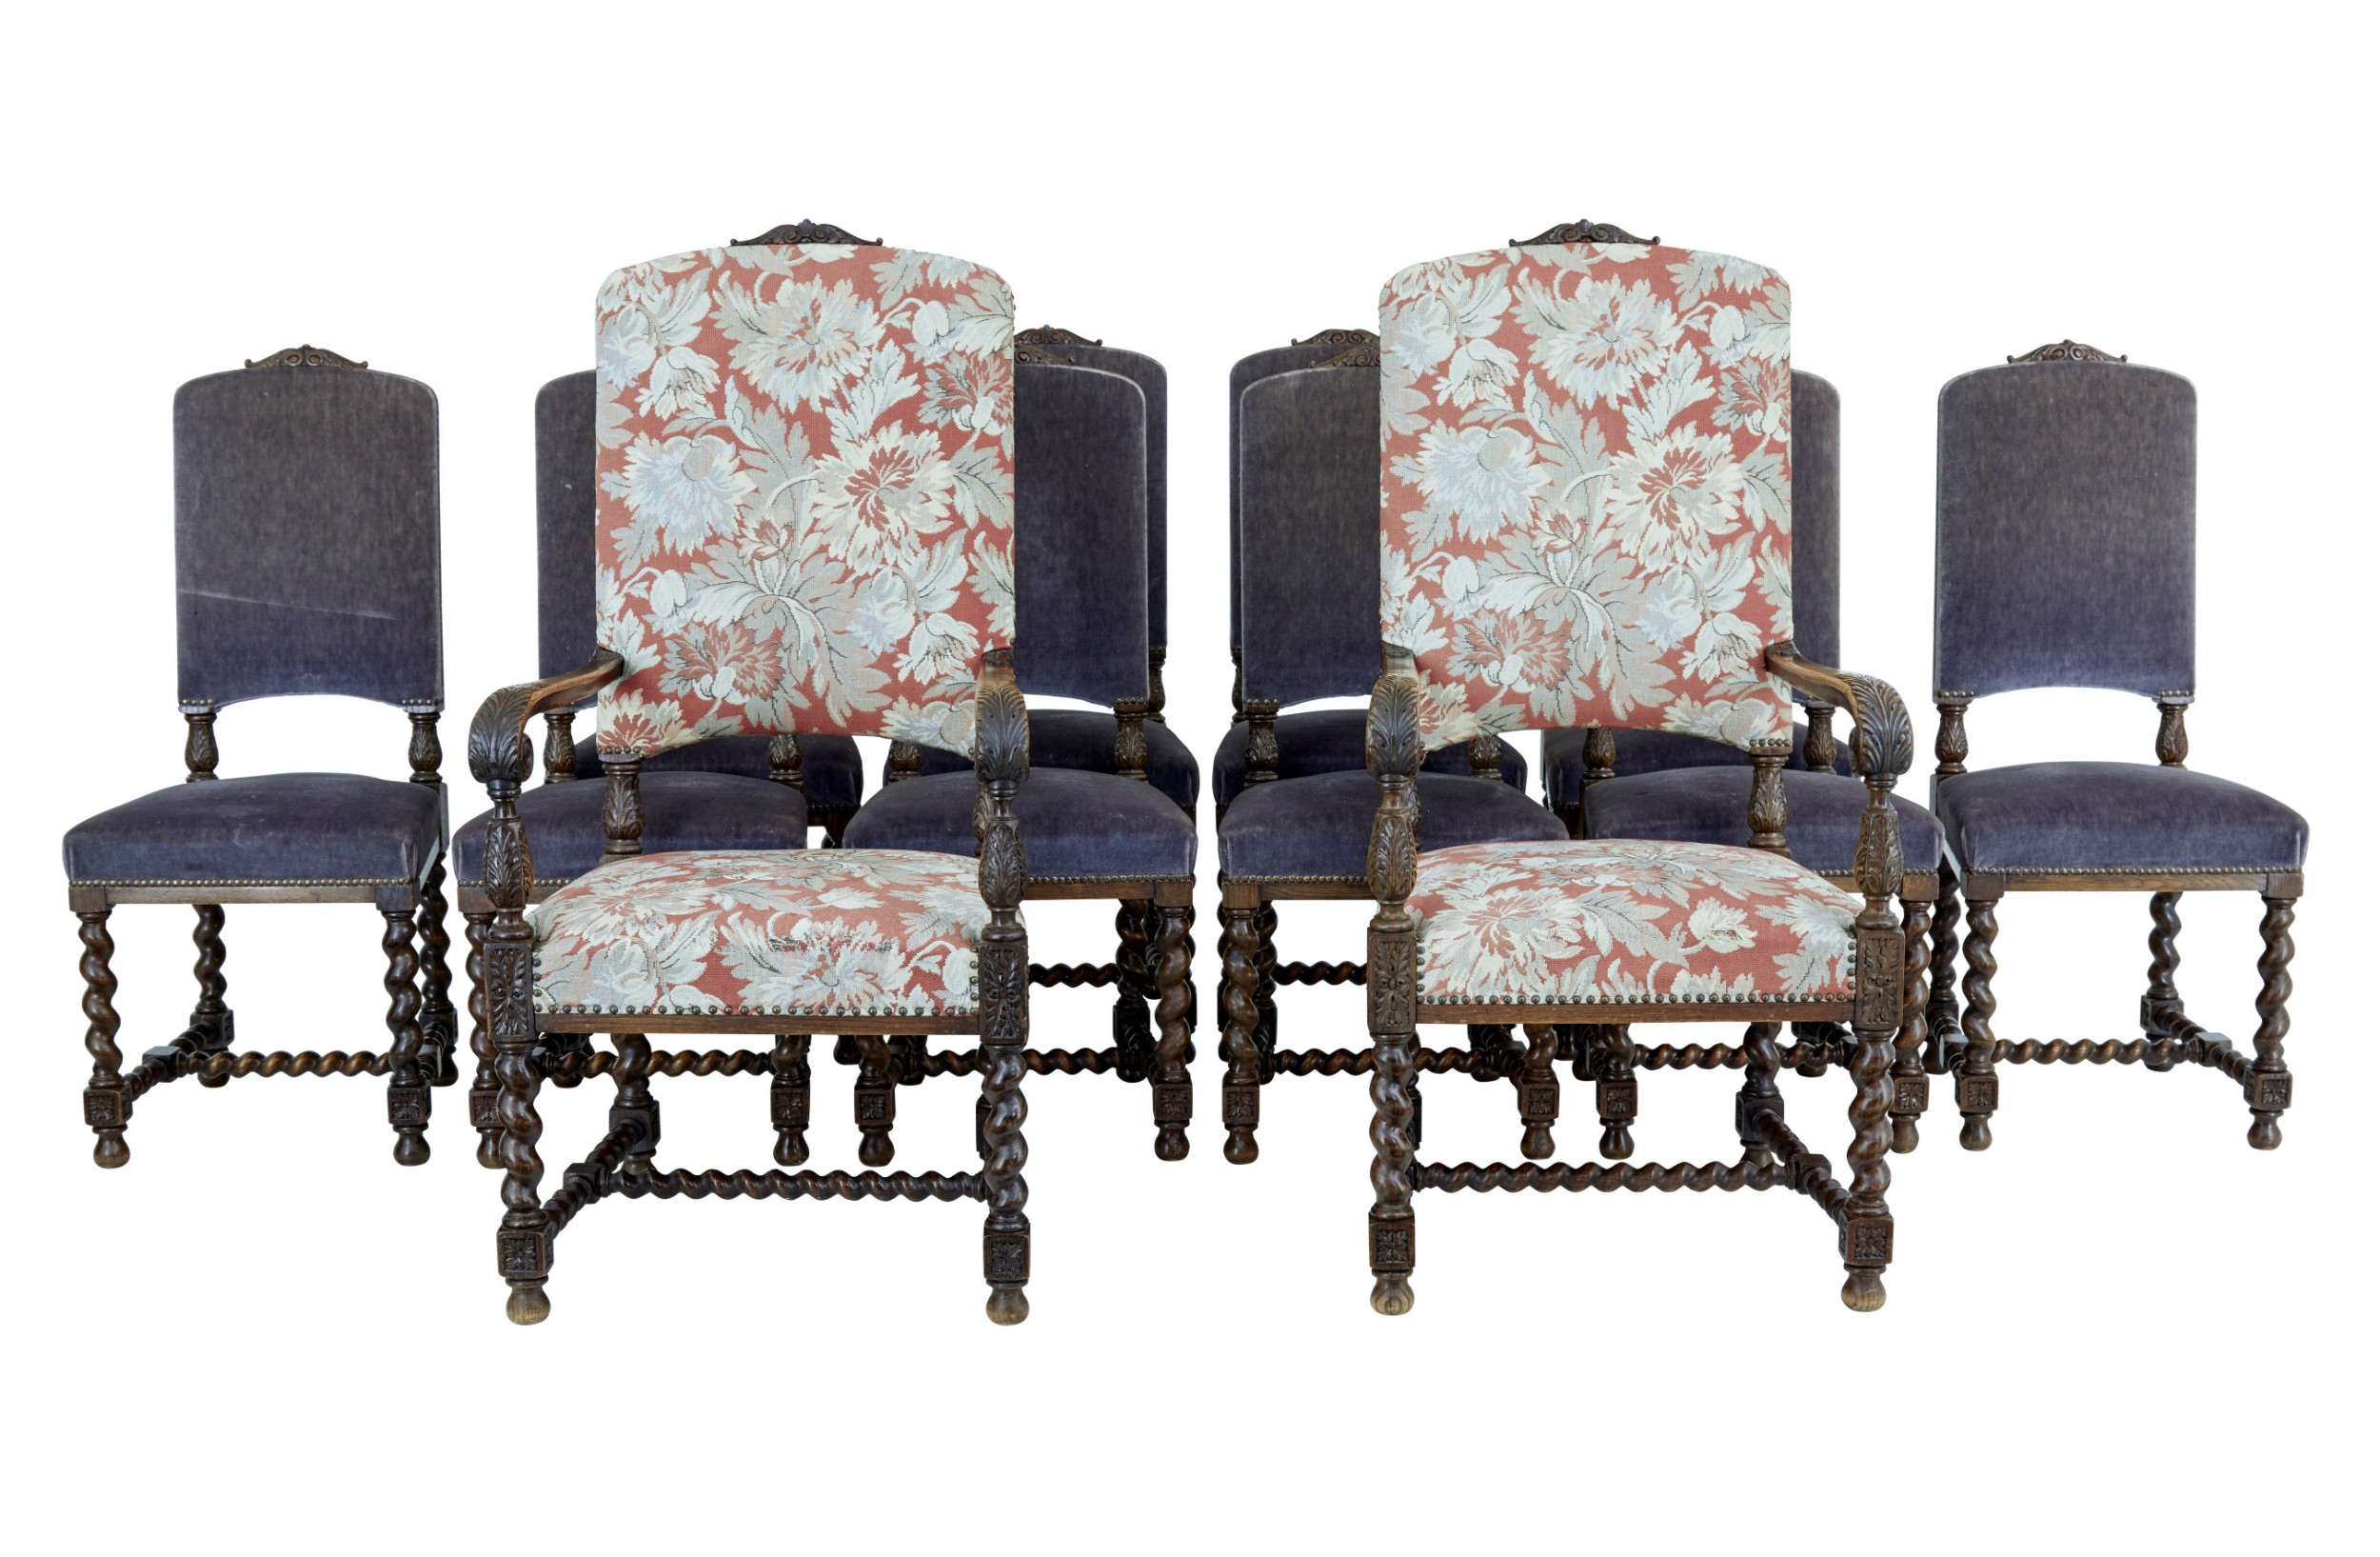 set of 12 late 19th century baroque revival carved oak dining chairs